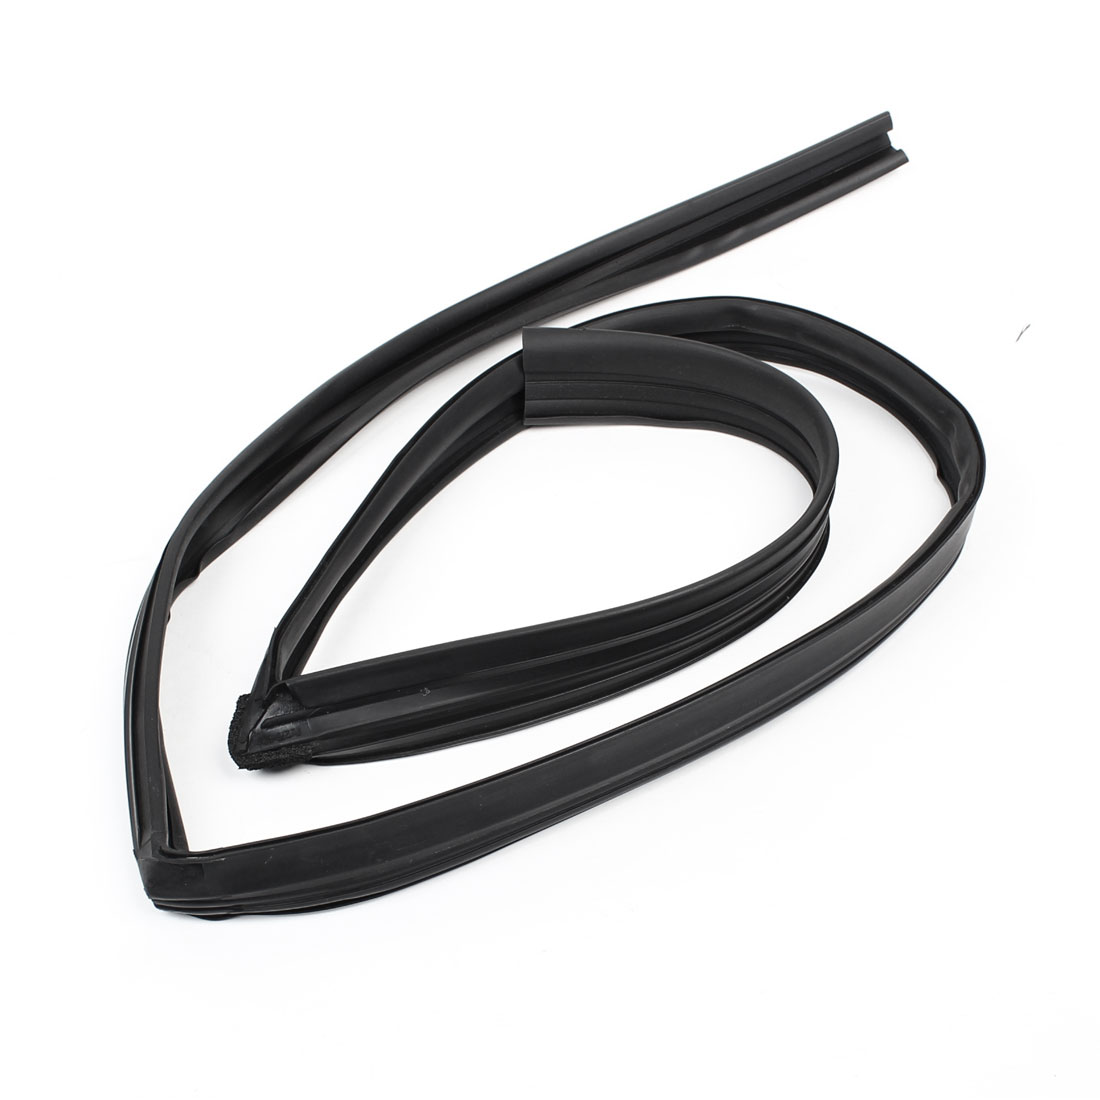 Vehicle Rubber Left Front Door Channel Weatherstrip Seal Gasket 72275-S84-A01